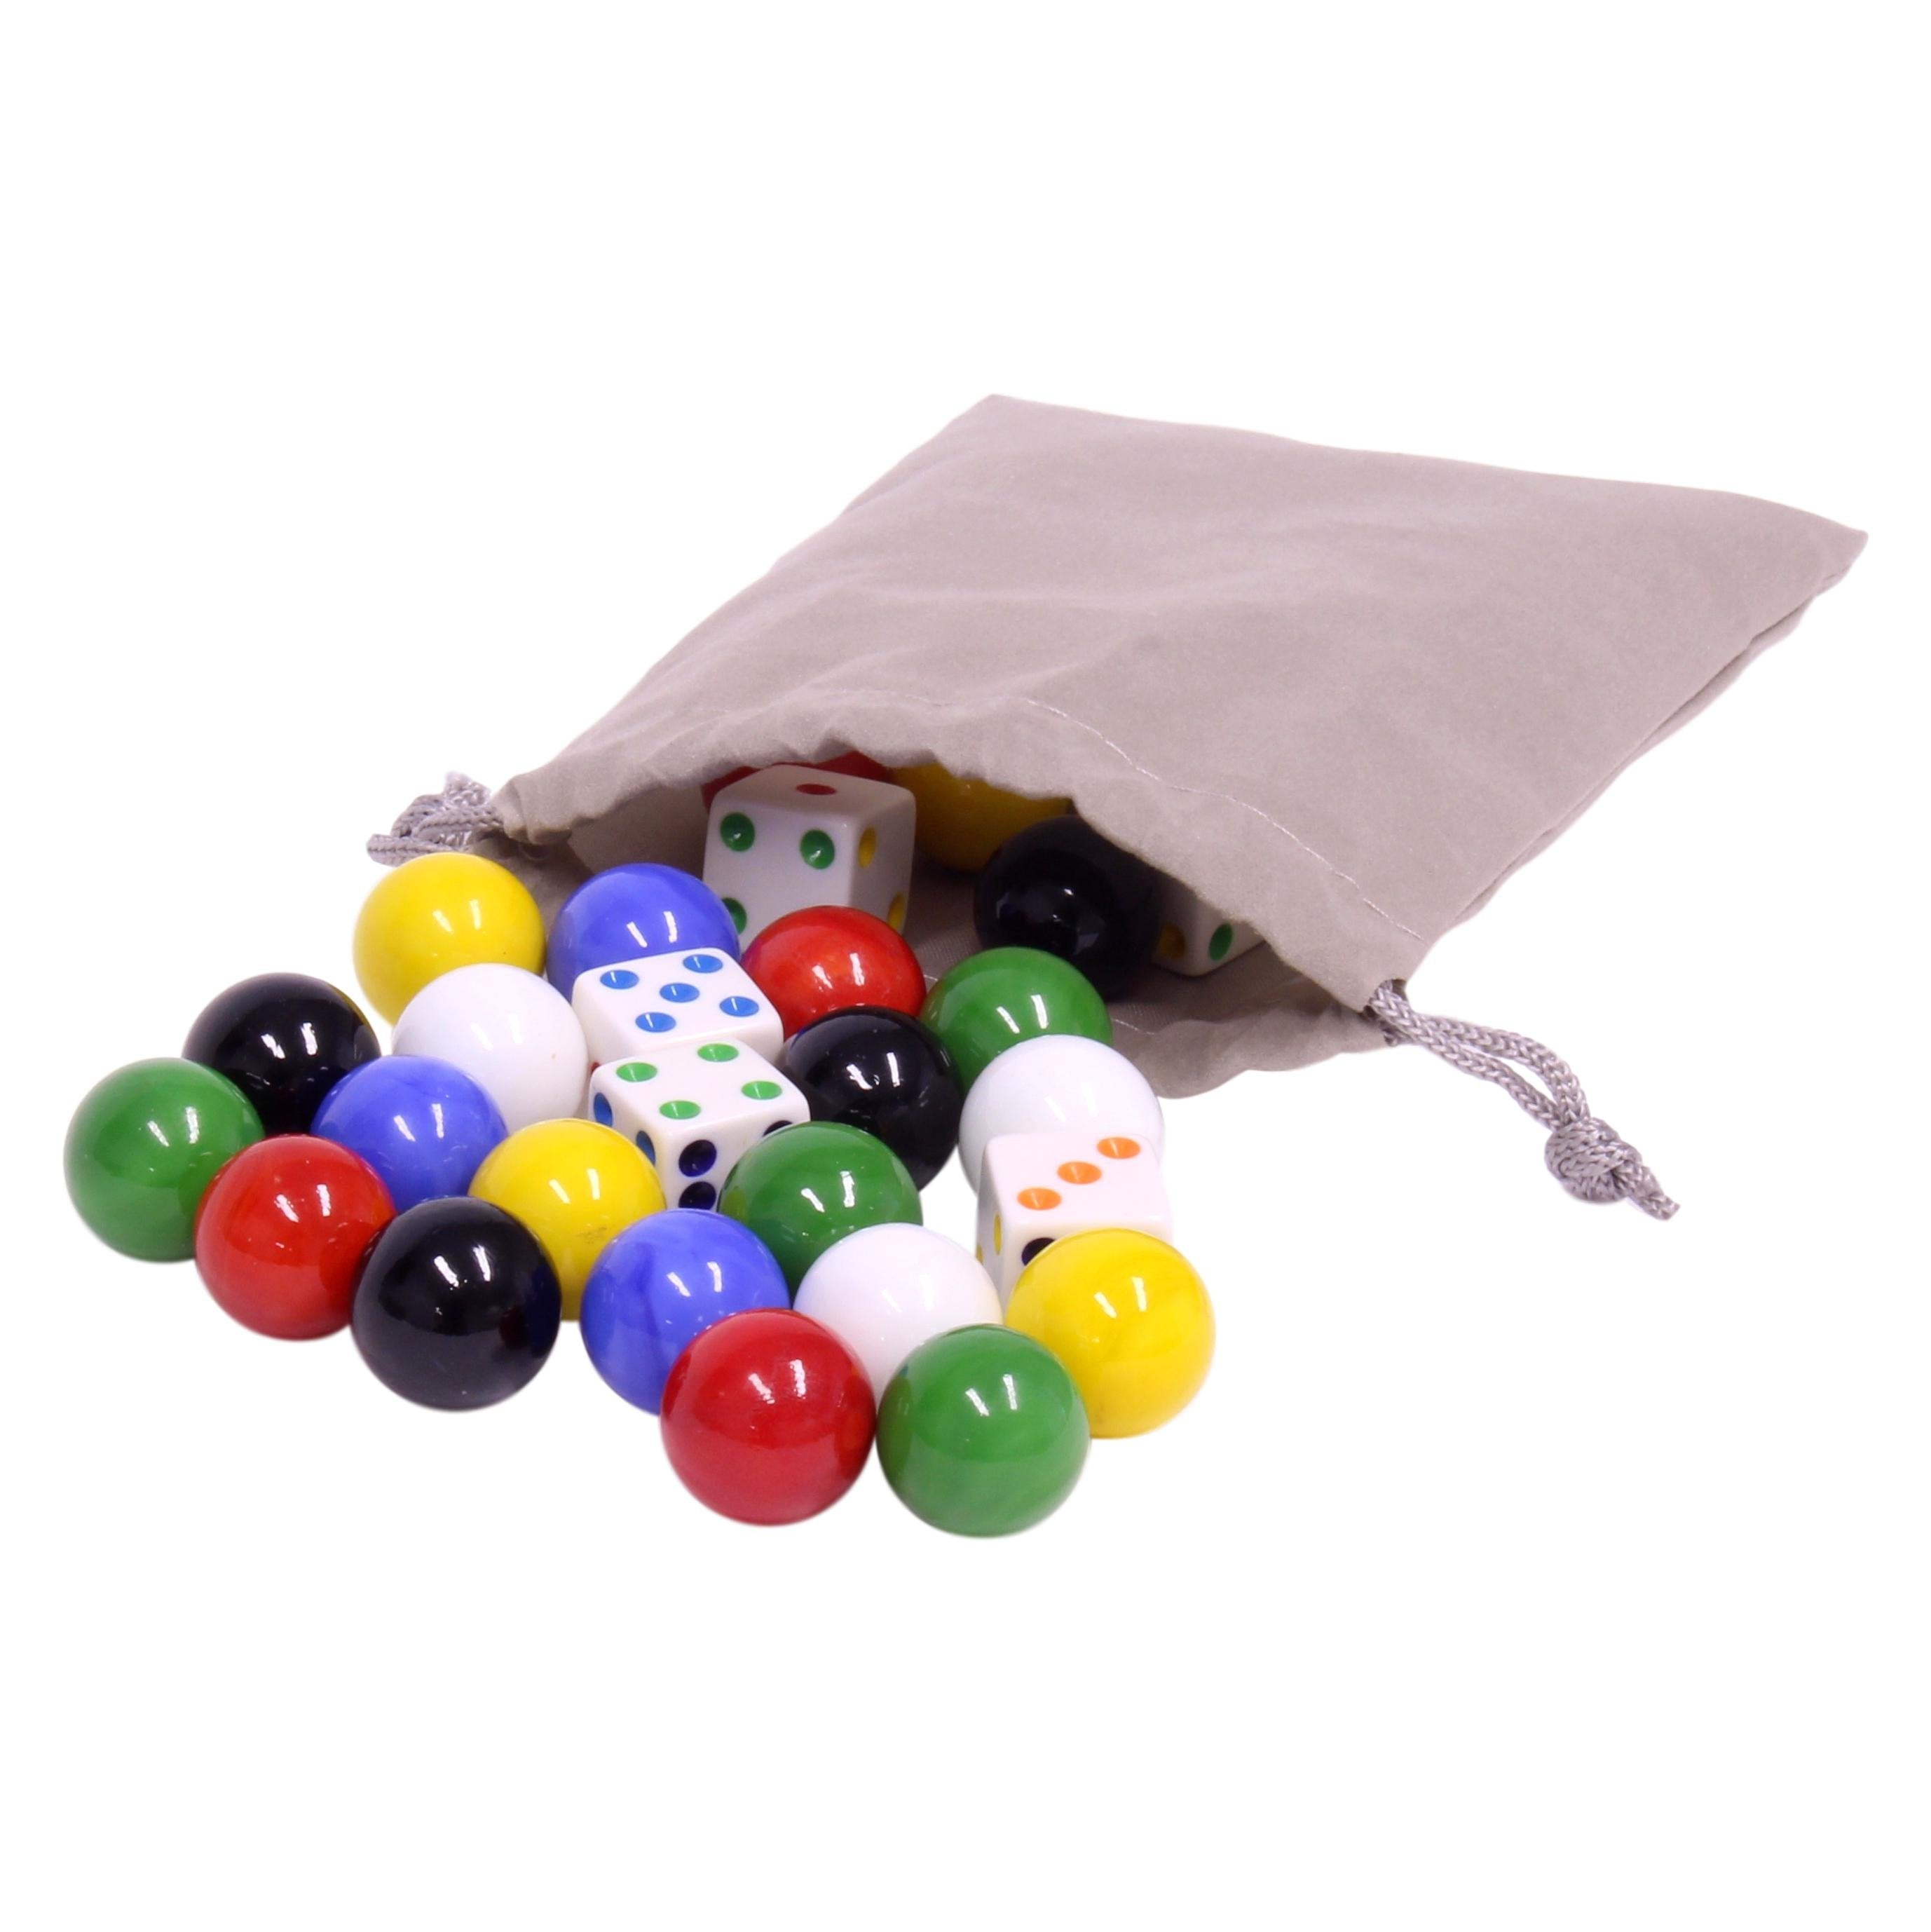 Game Bag of 24 Glass Marbles (17-18mm) and 6 Dice for Aggravation Game